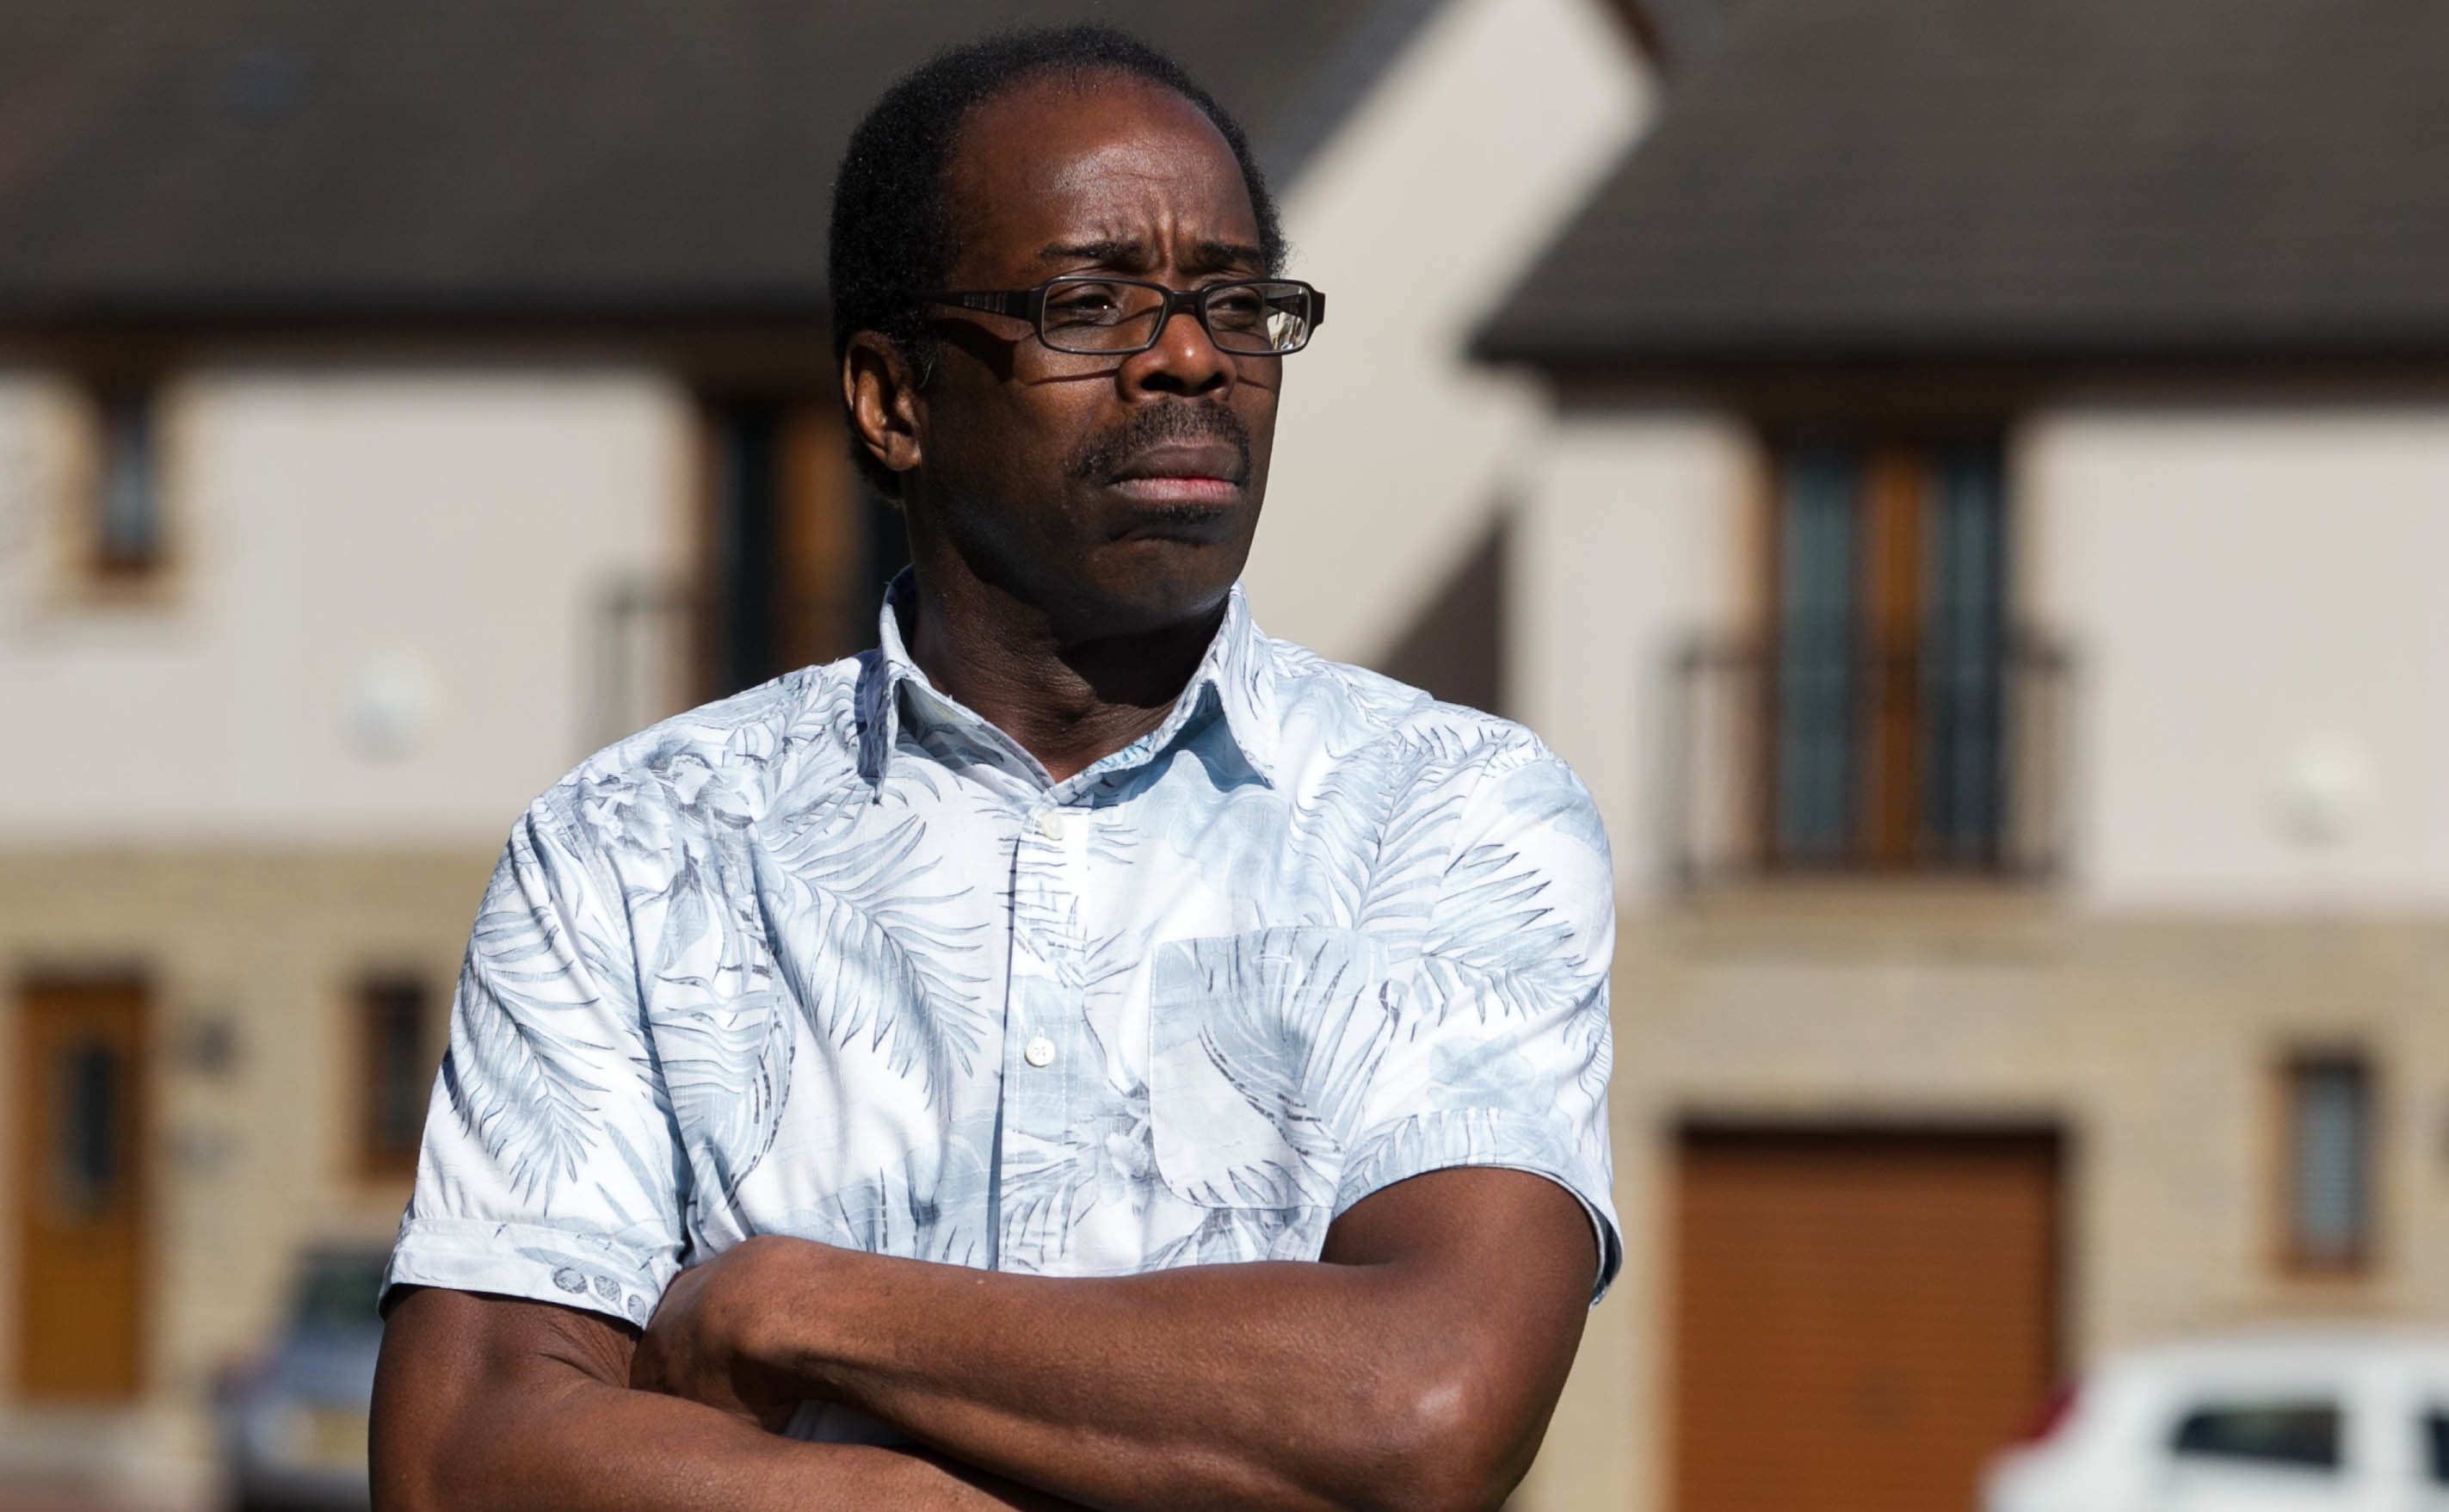 Paul Cudjoe was part of the Windrush generation who settled in the UK